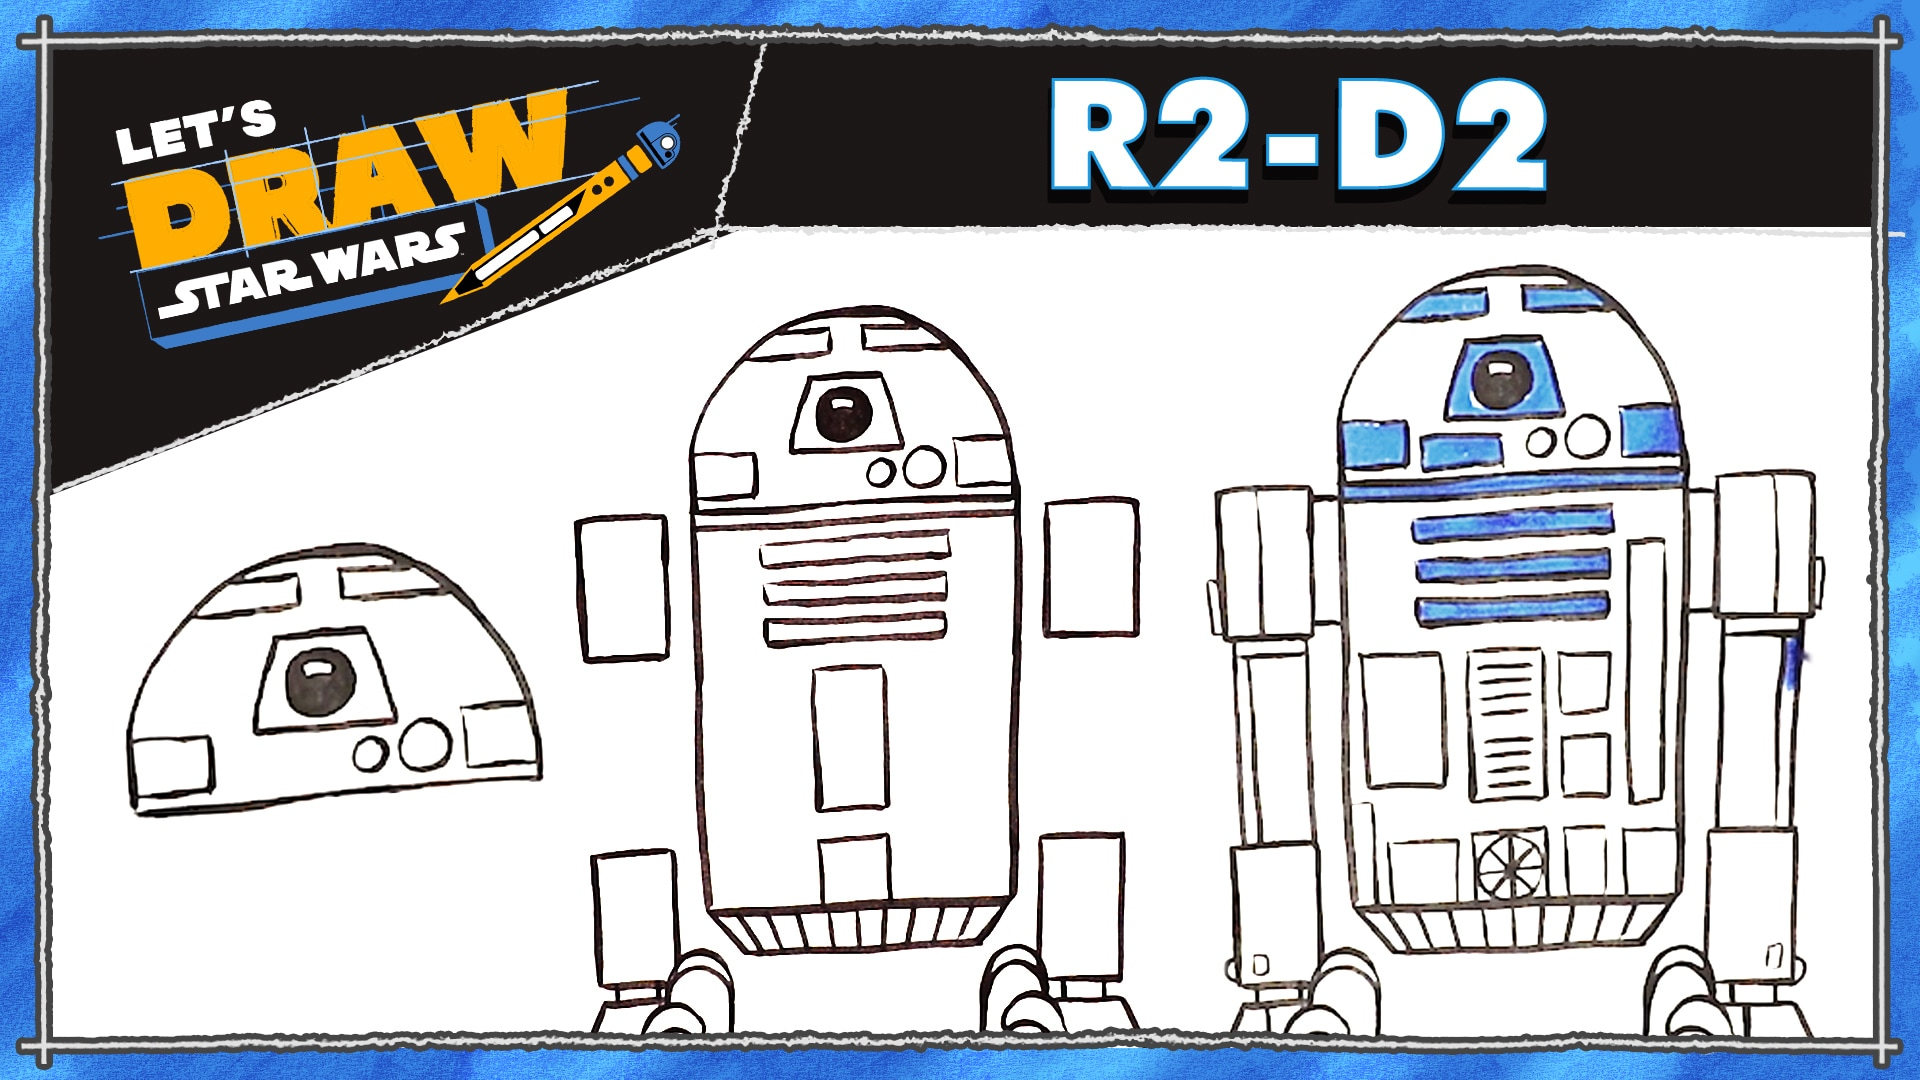 How to Draw R2-D2 | Let's Draw Star Wars